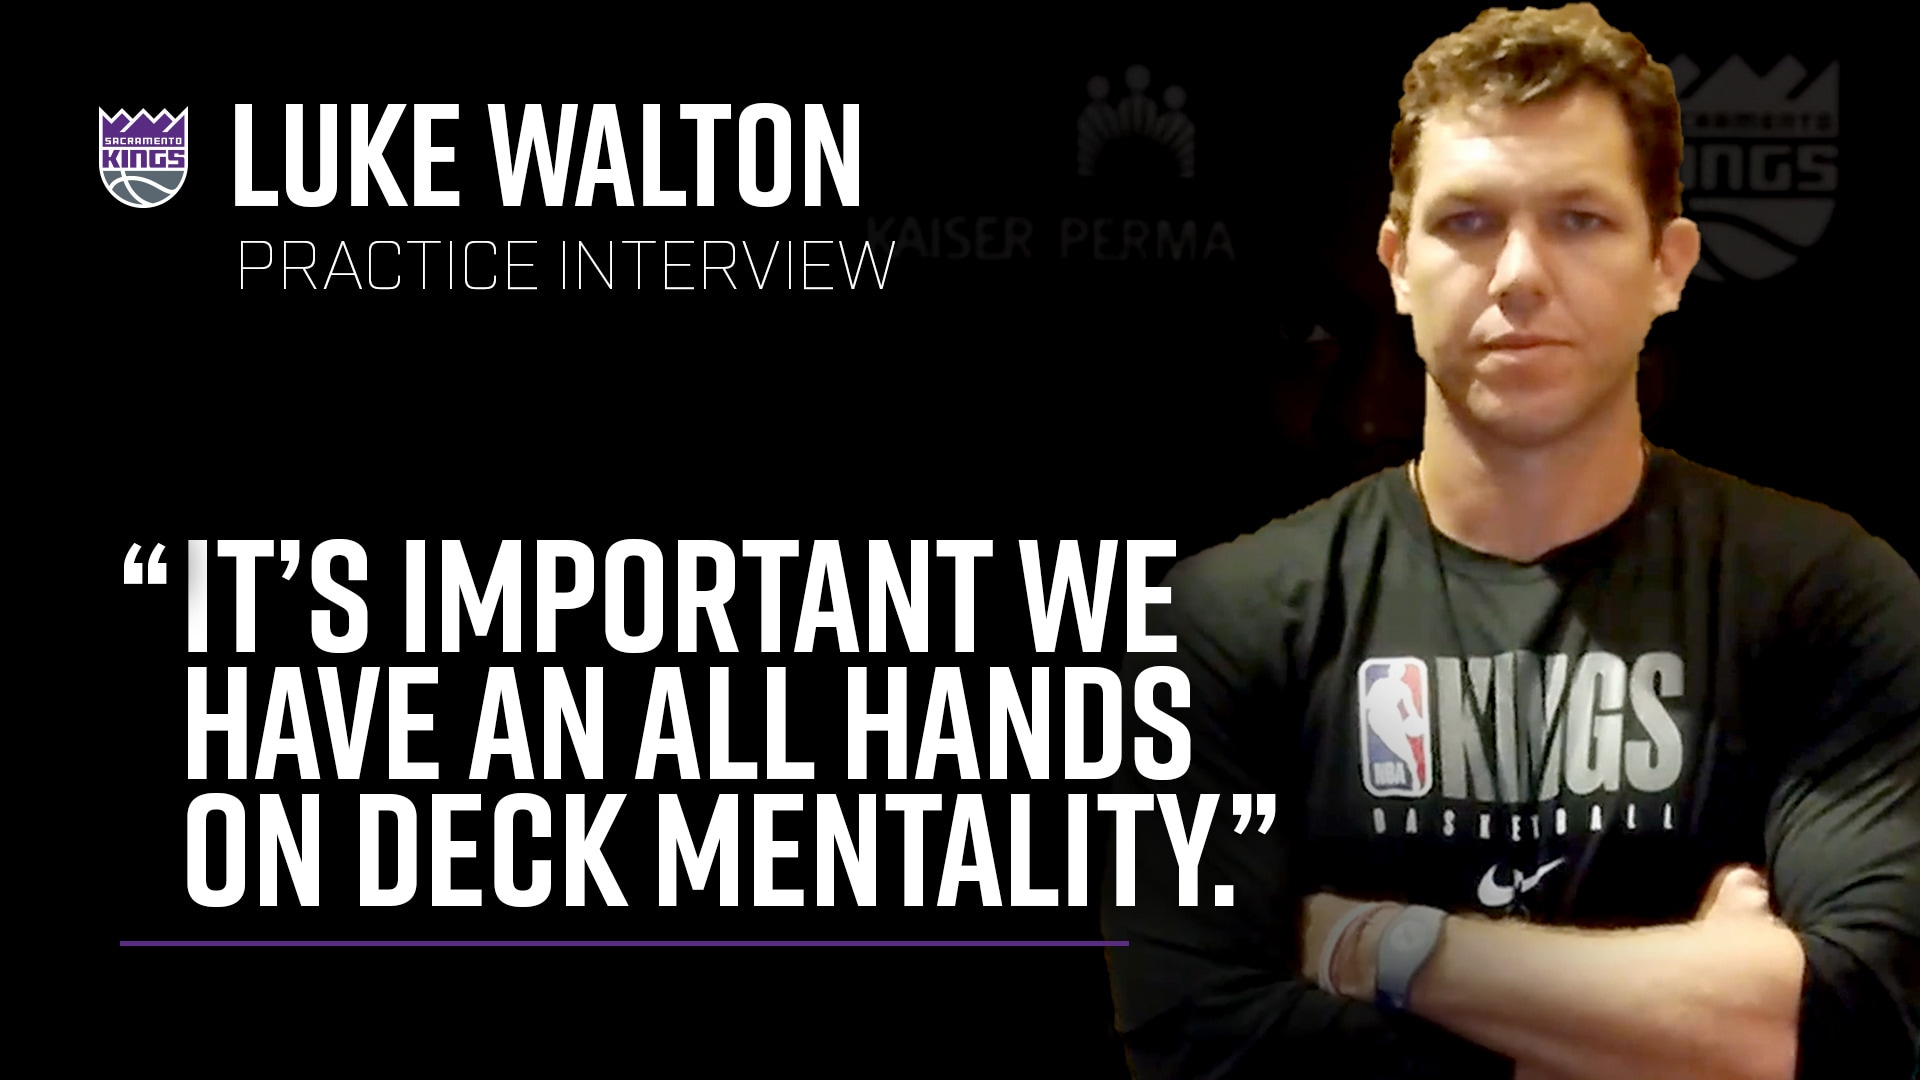 Luke Walton is Looking For All Hands on Deck | Practice Interview 7.11.20